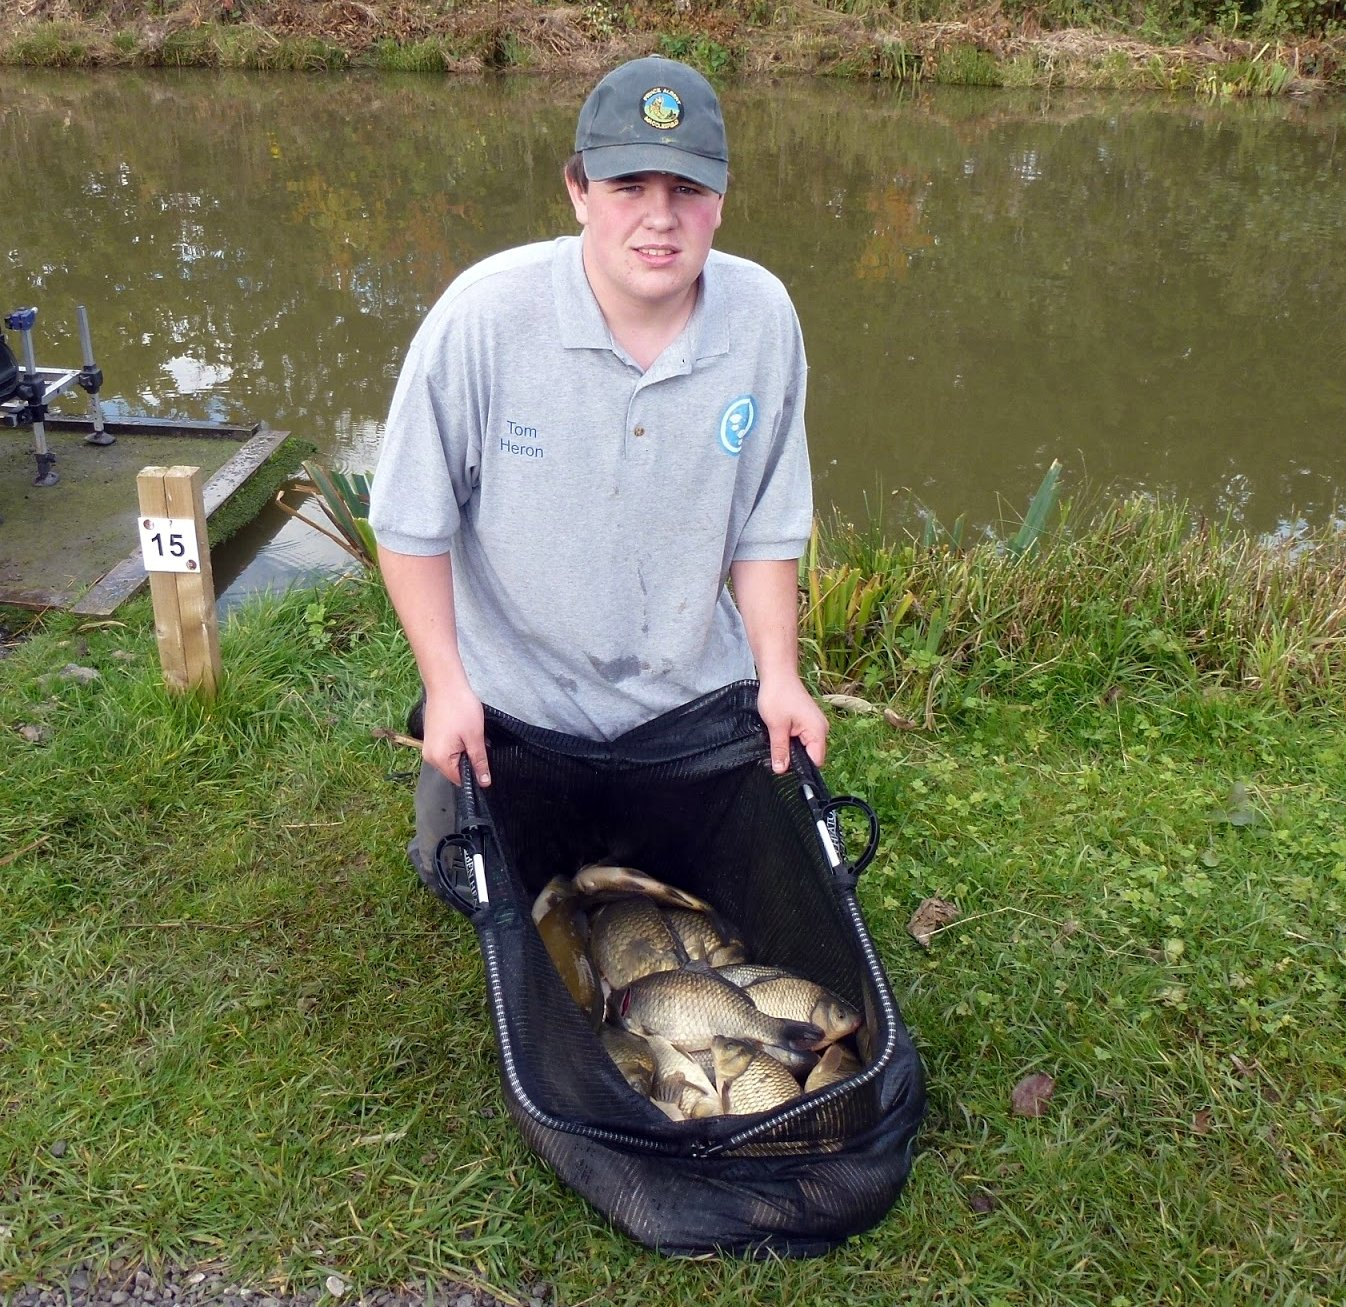 Cheshire angling development group: north west inter county match 2012